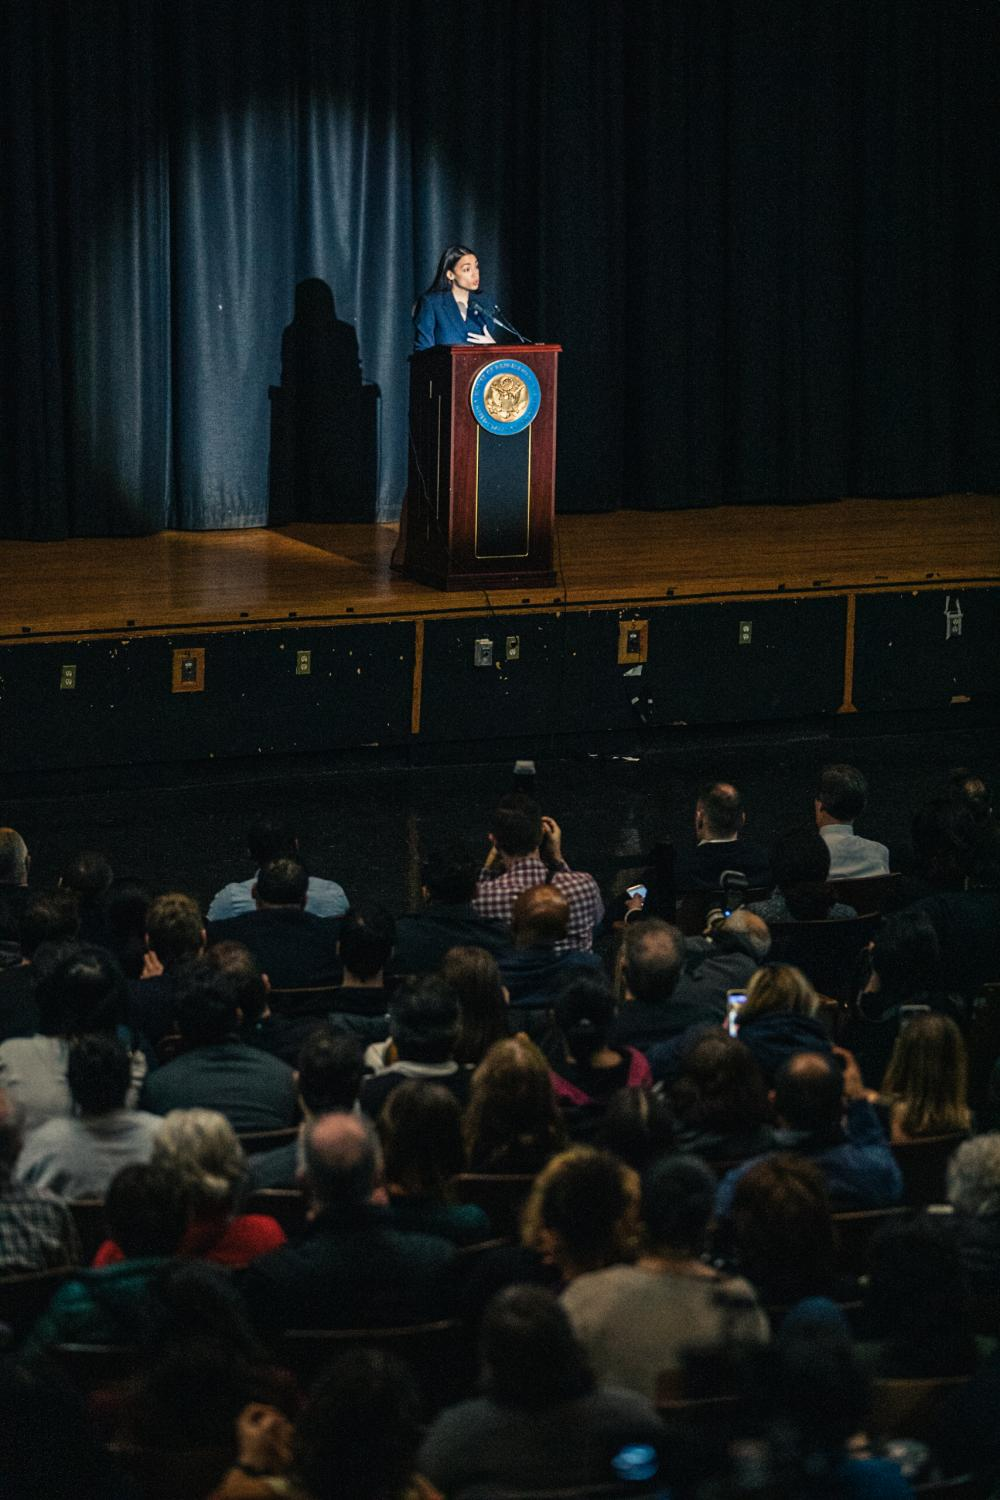 """""""A-O-C"""" chants erupt into the air of the Renaissance School for Musical Theater and Technology as Congresswoman Alexandria Ocasio-Cortez speaks to constituents about her agenda in office during her formal inaugural address at the Renaissance School for Musical Theater and Technology, in the Bronx borough of New York City, February 16, 2019."""